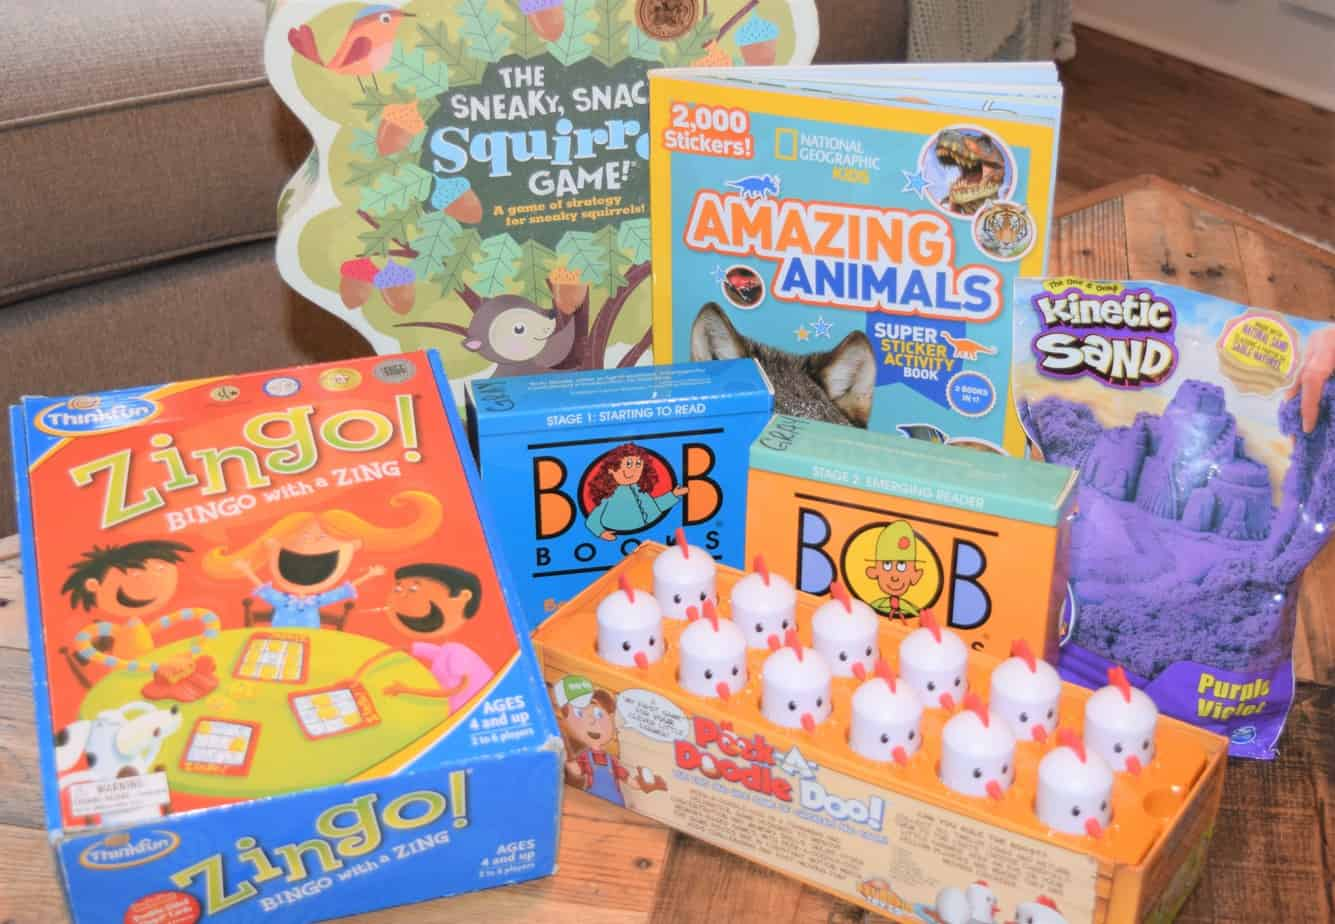 Educational games and toys set out on a coffee table.